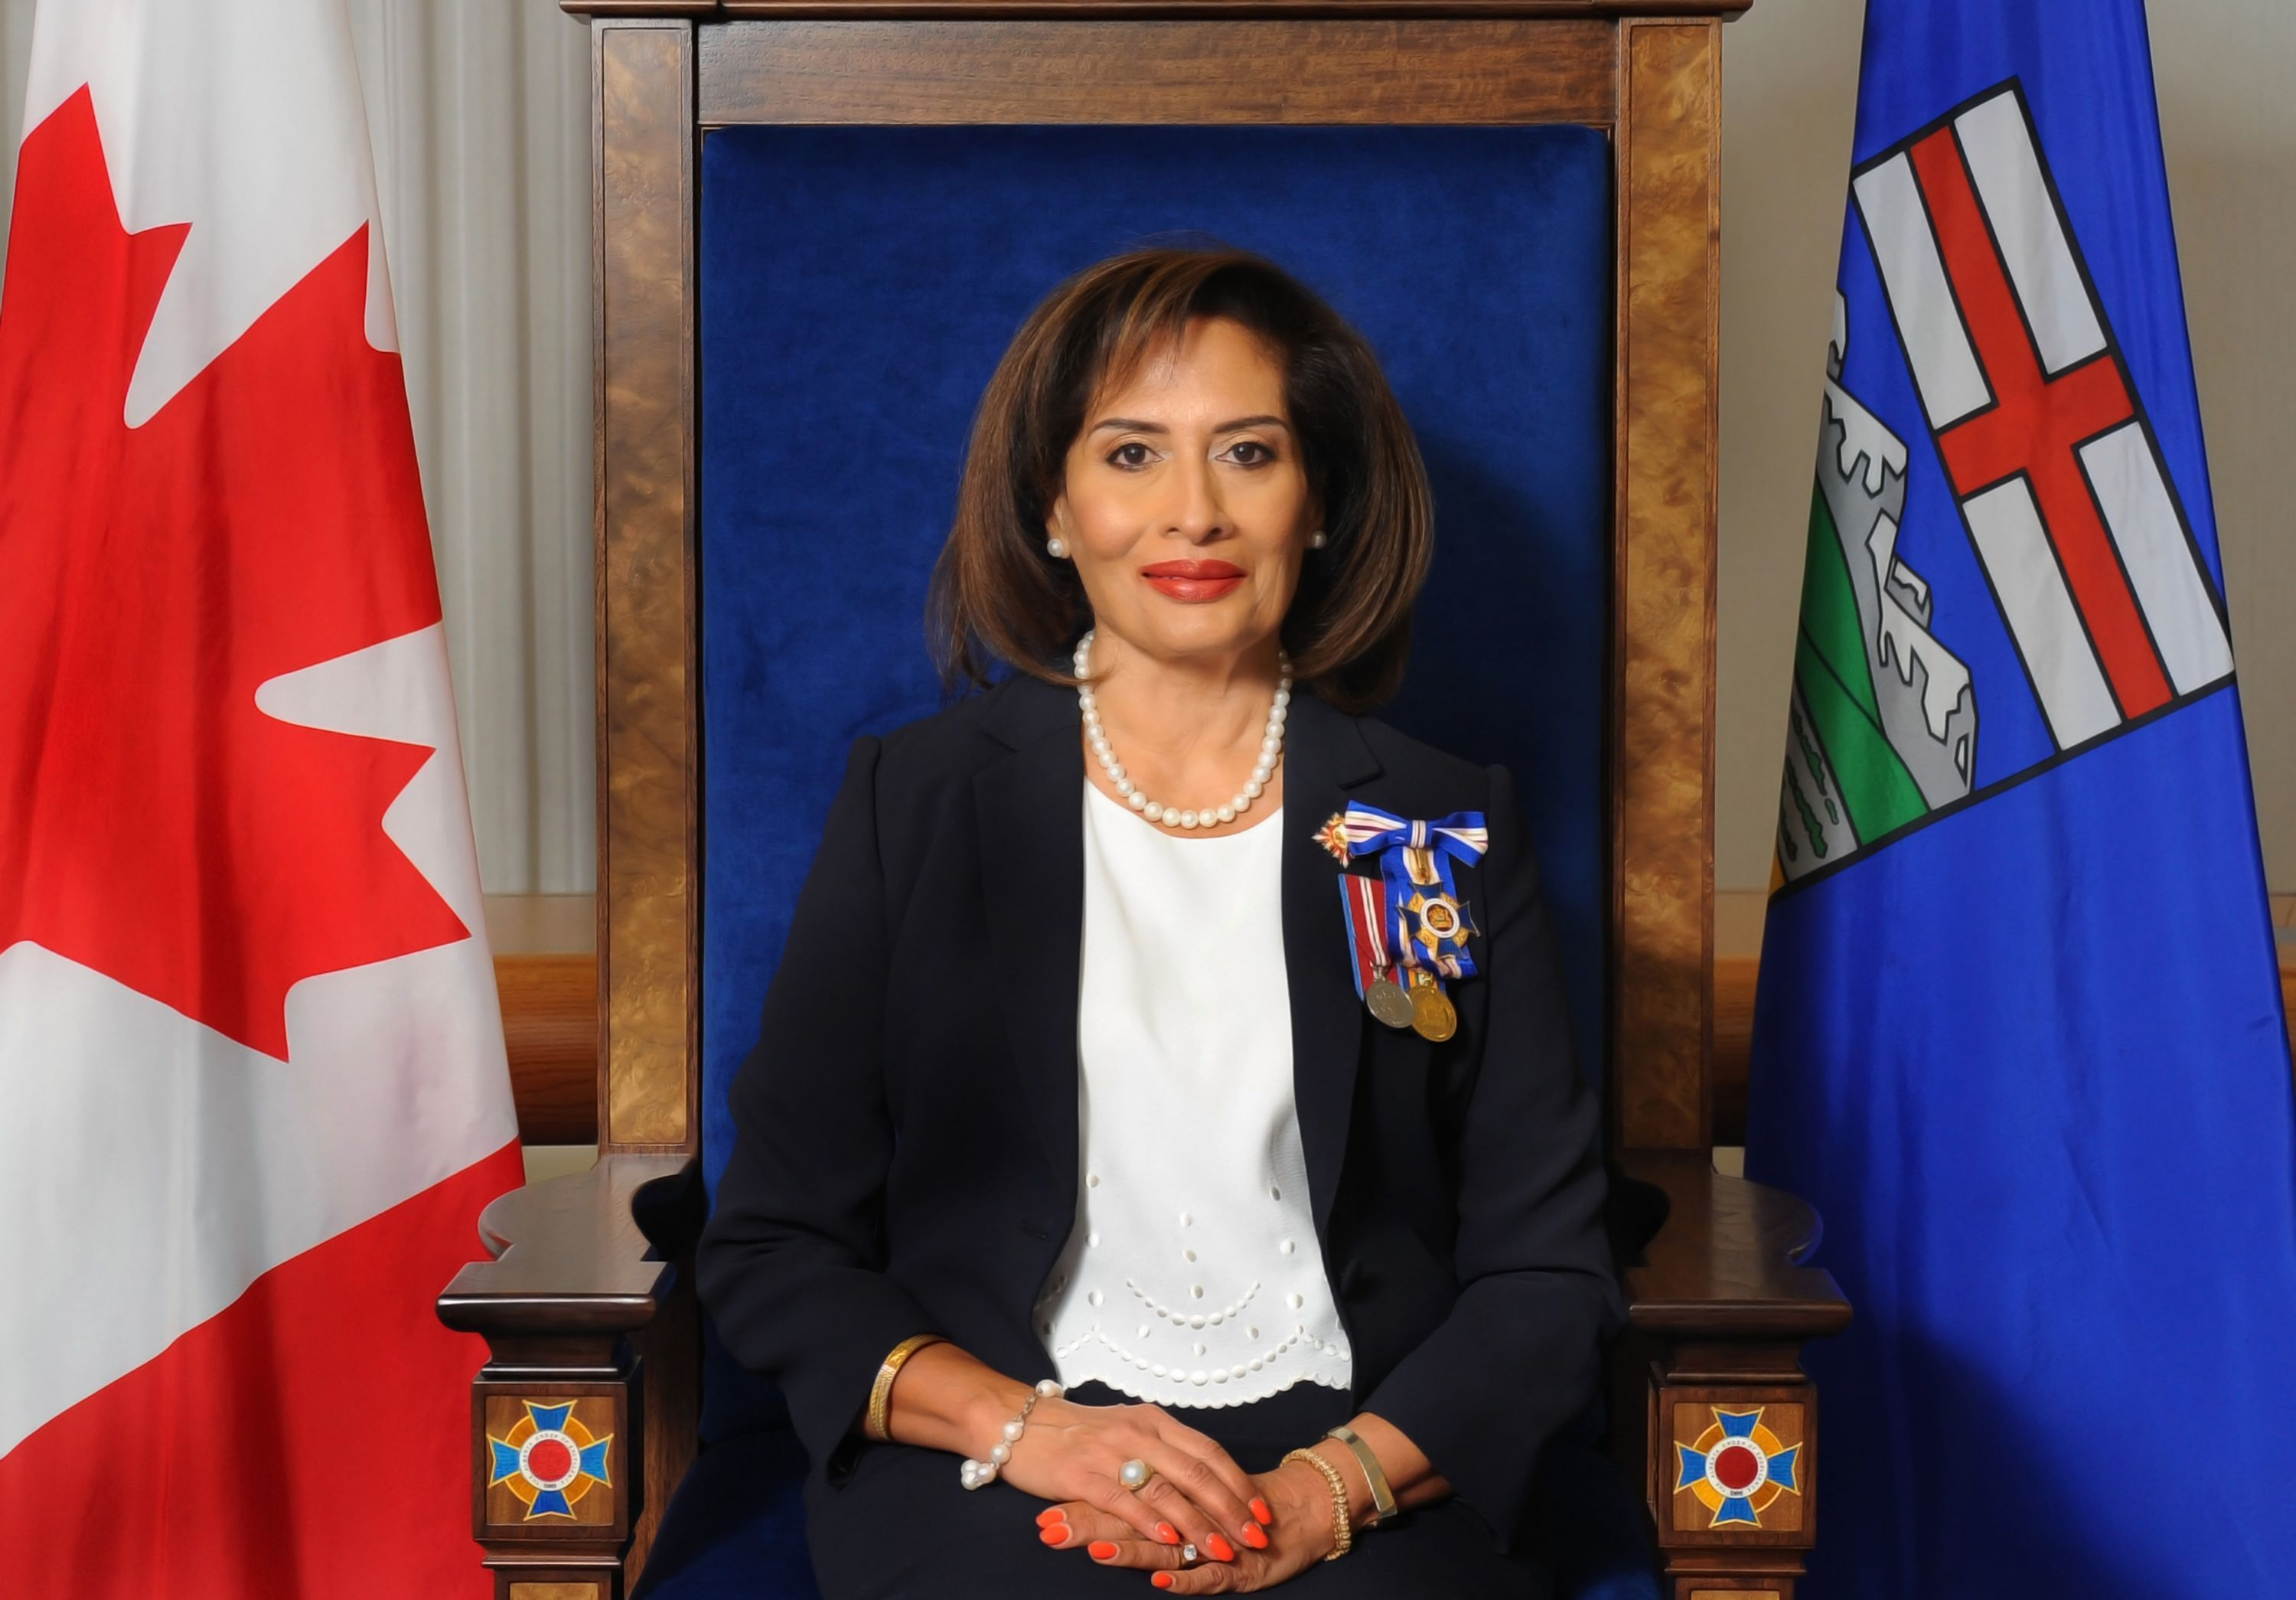 SALMA LAKHANI: The First Muslim Lieutenant Governor in Canadian history